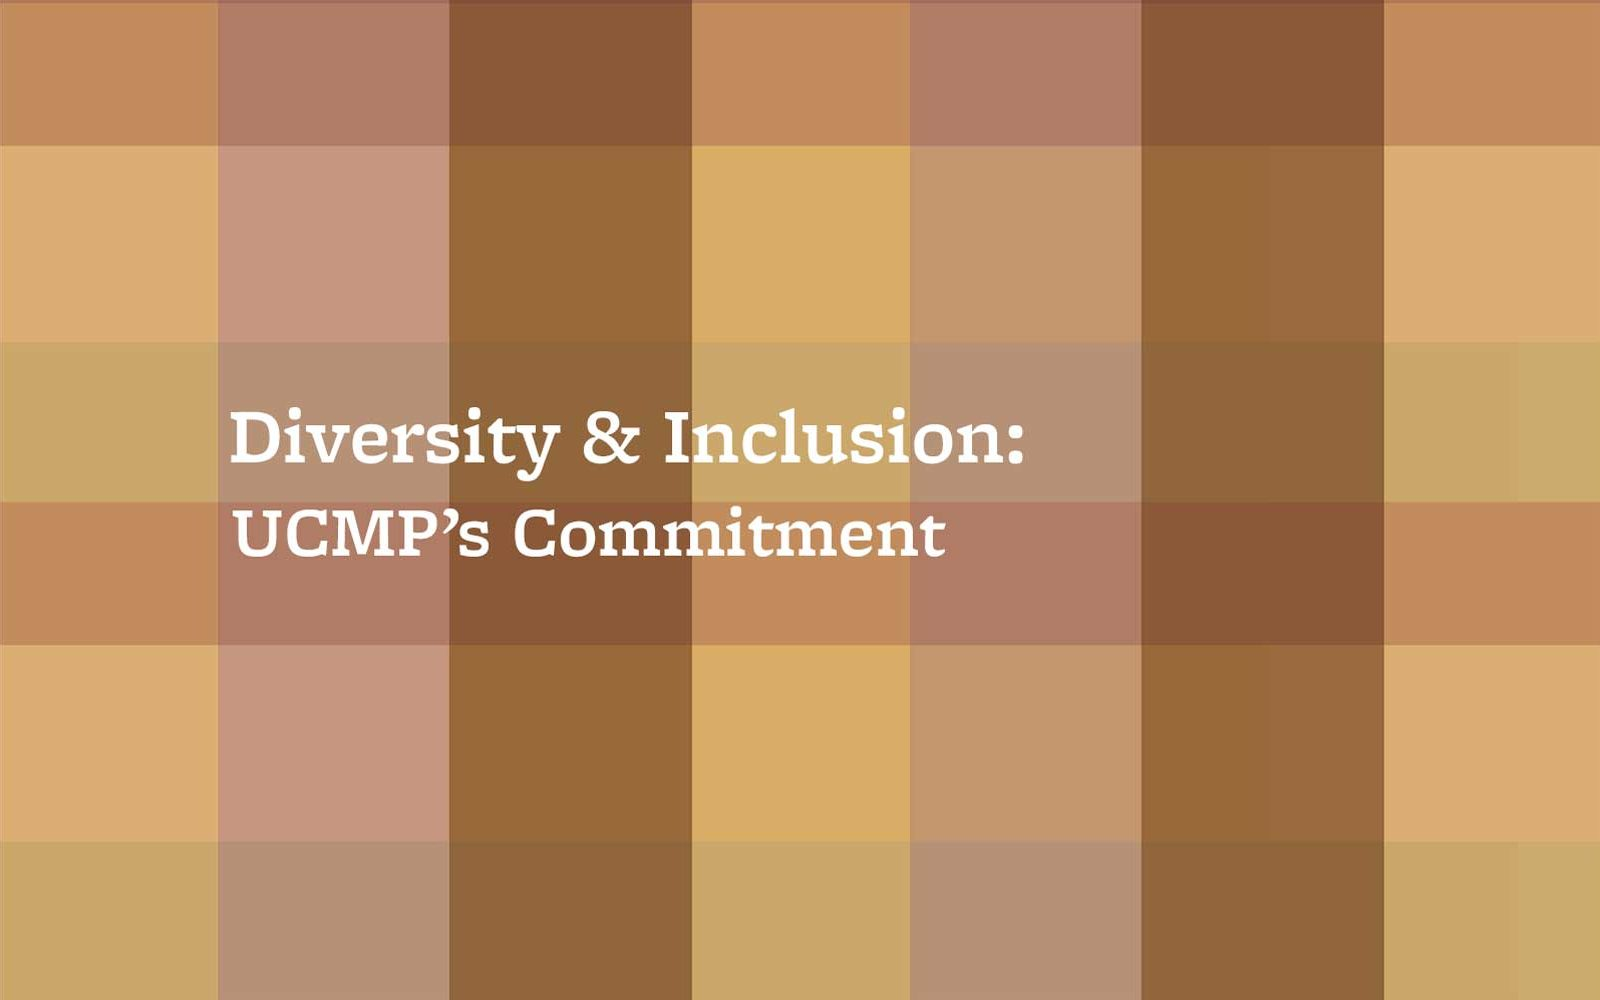 Diversity and inclusion at UCMP